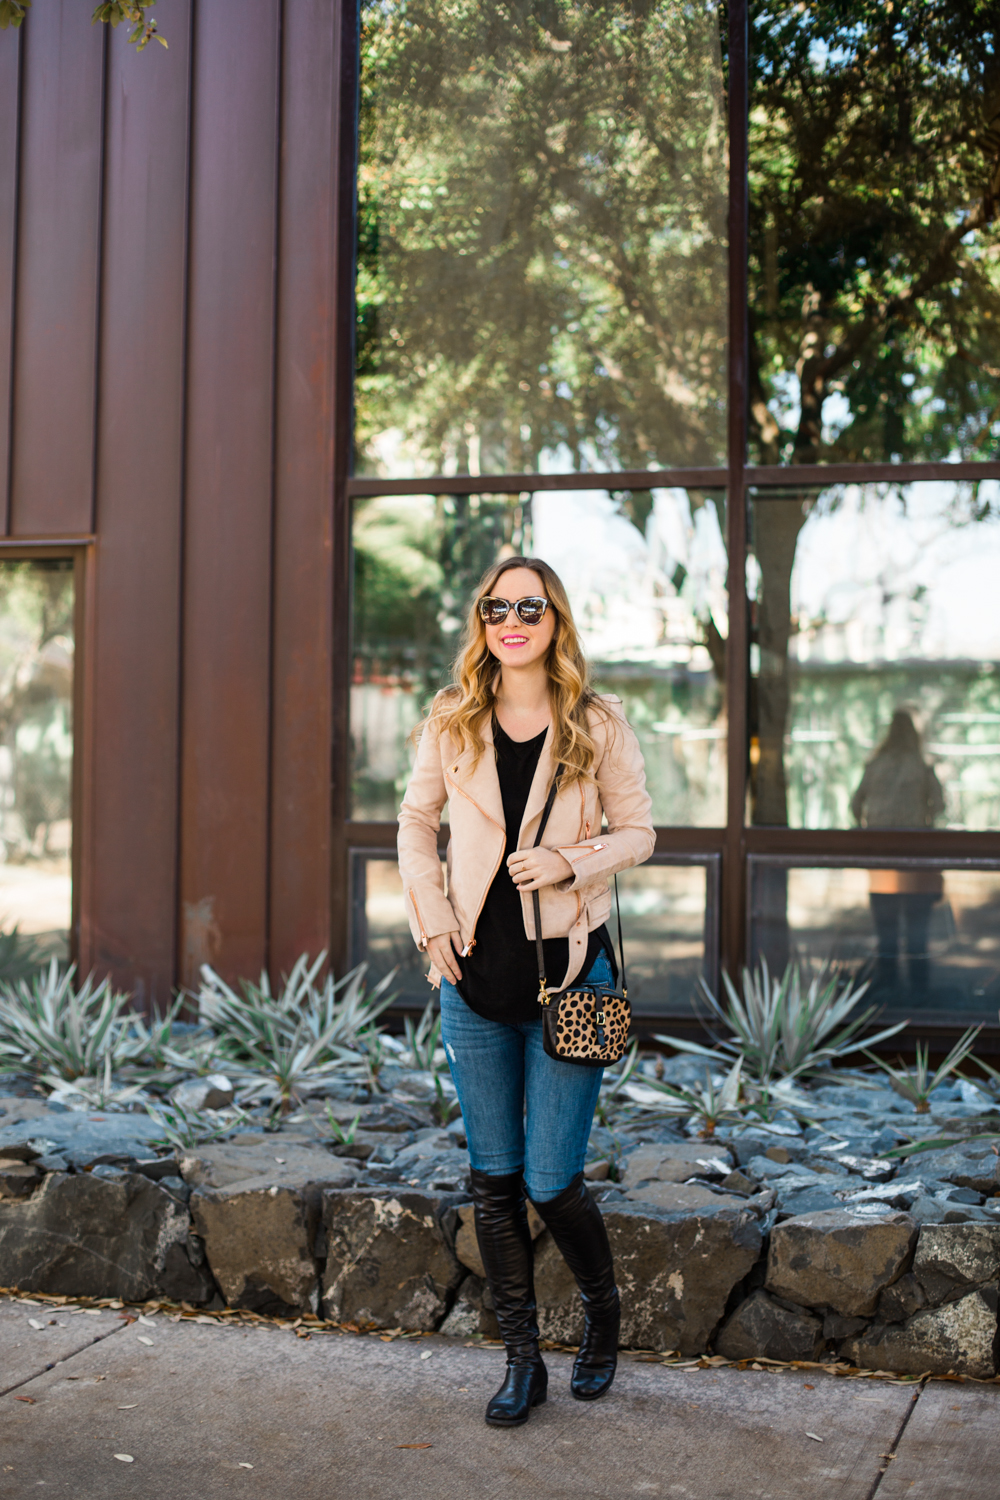 Chic at every age 33 sidesmile style for Garderobe 33 style blog